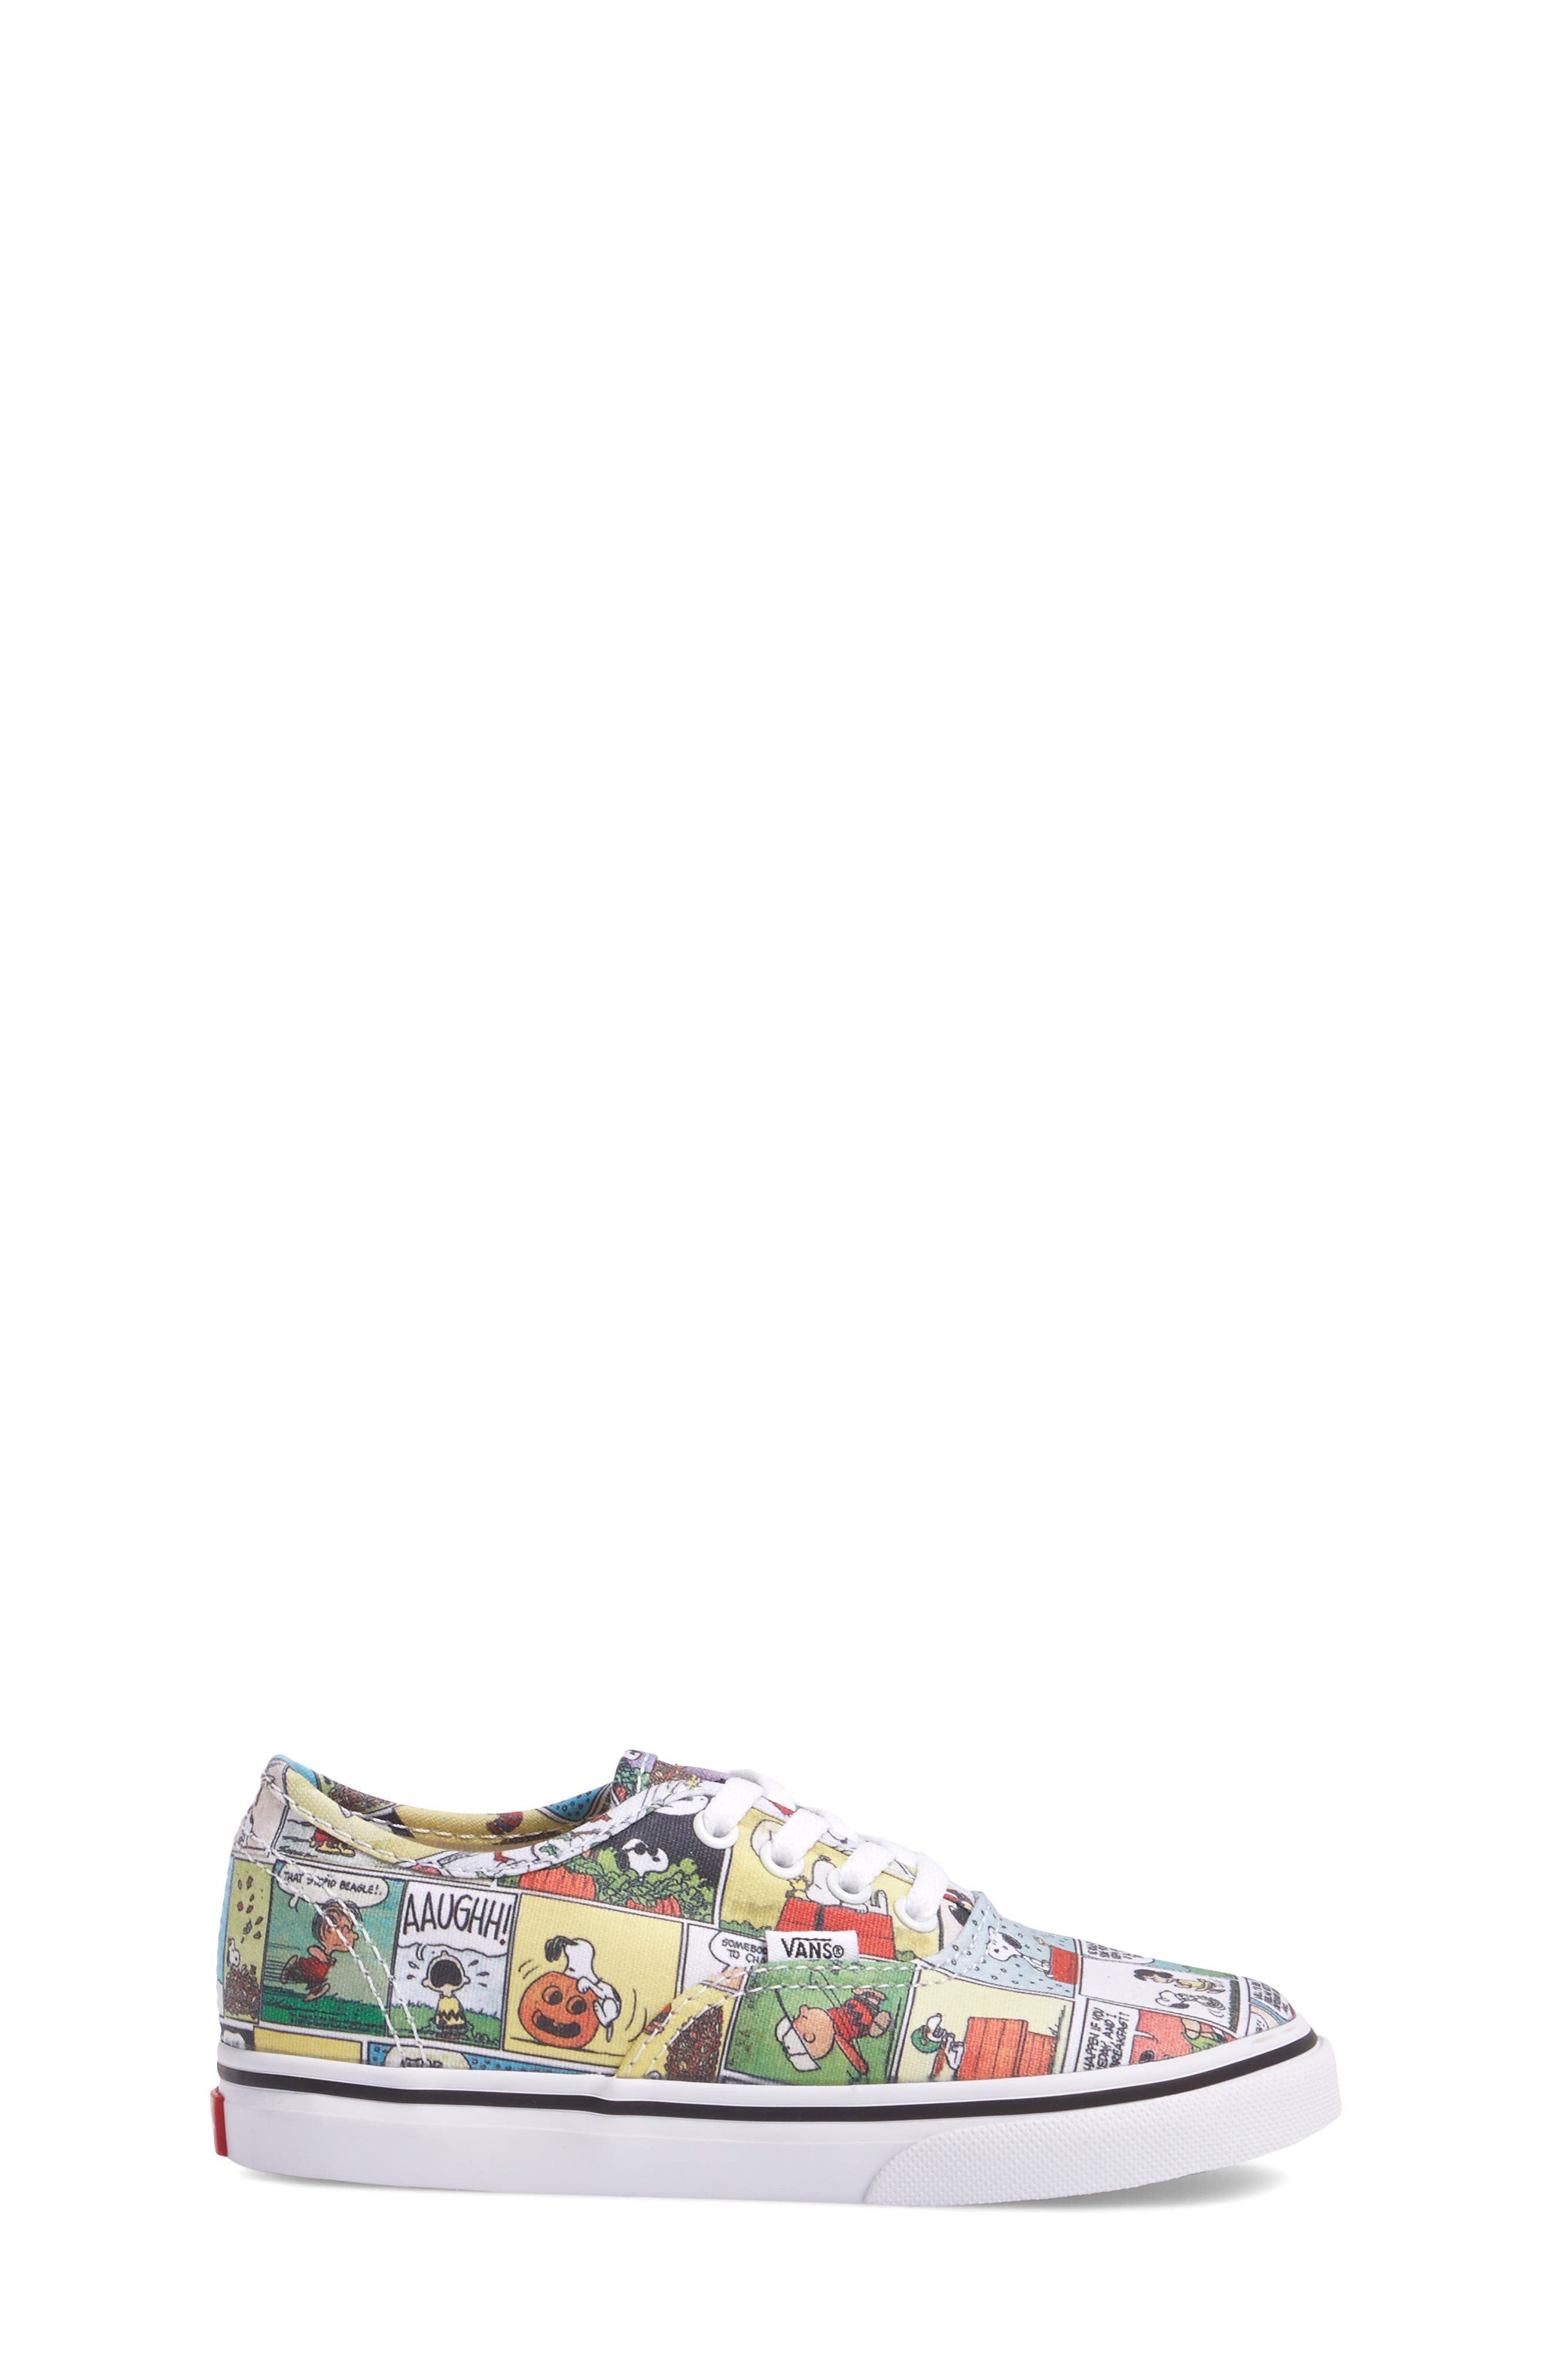 x Peanuts Authentic Low Top Sneaker,                             Alternate thumbnail 3, color,                             001